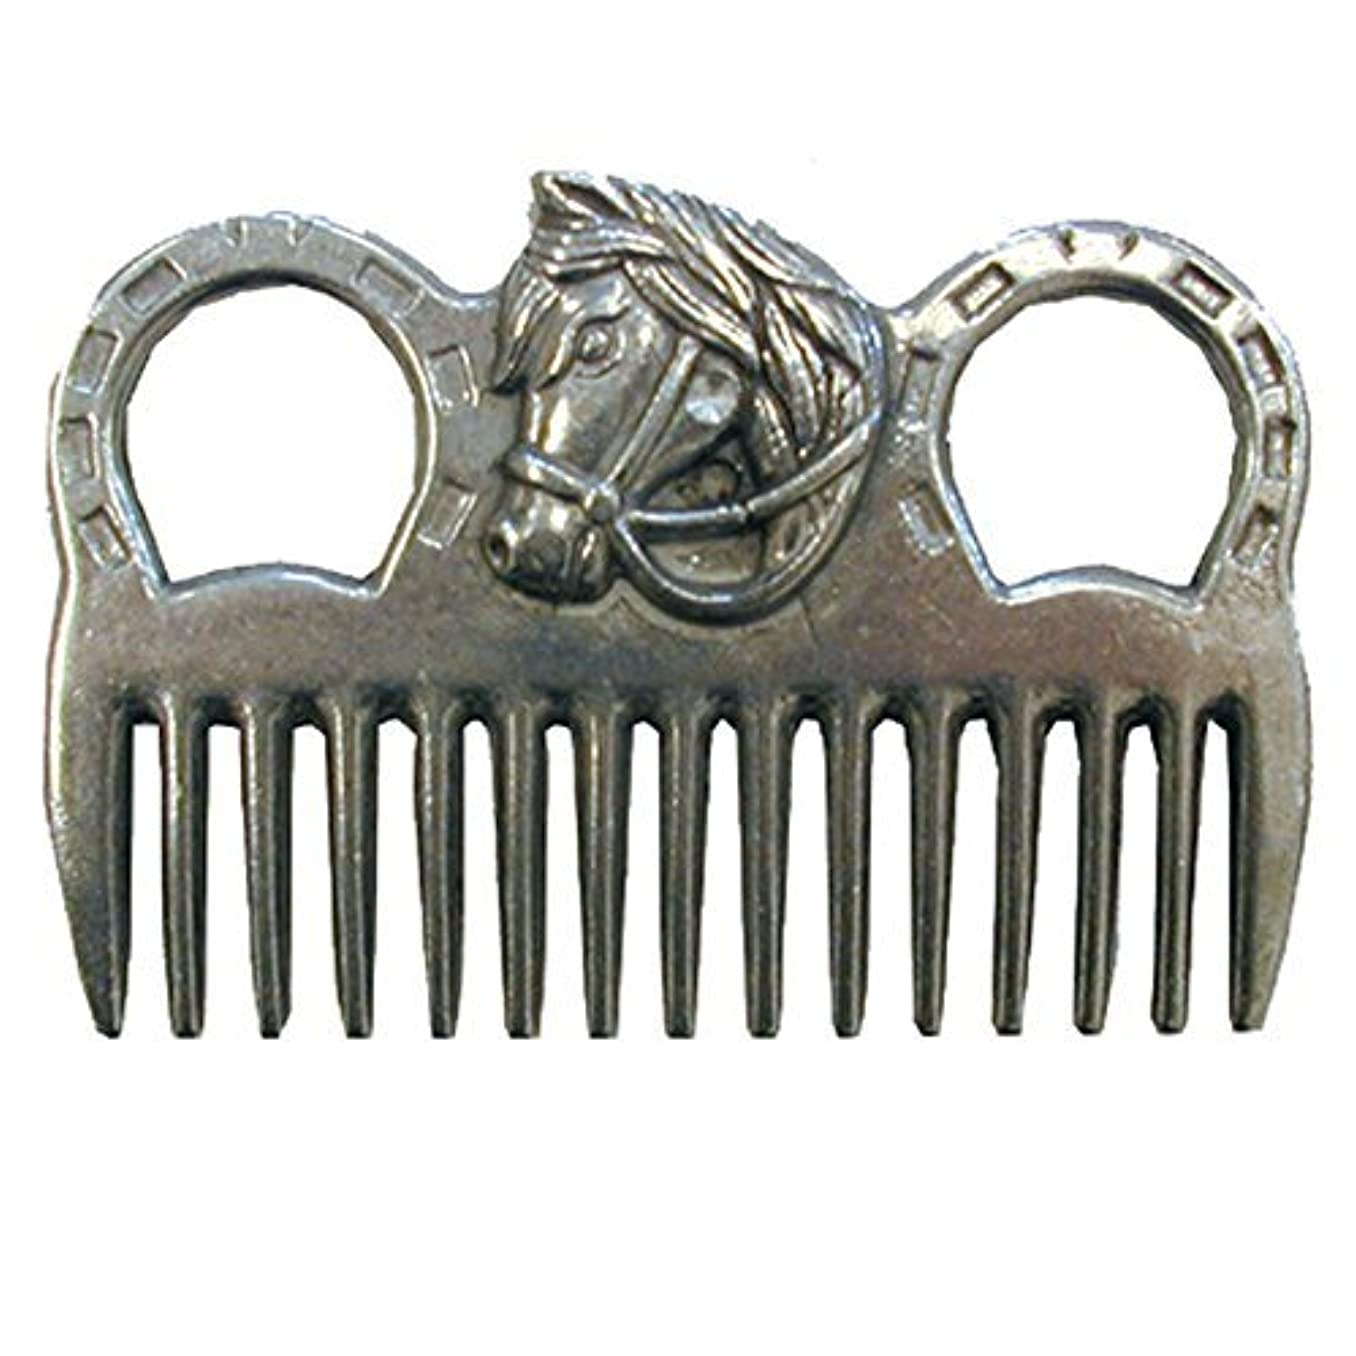 幅徴収資格情報Intrepid International - MANE COMB ALUMINUM W/HORSEHEAD [並行輸入品]